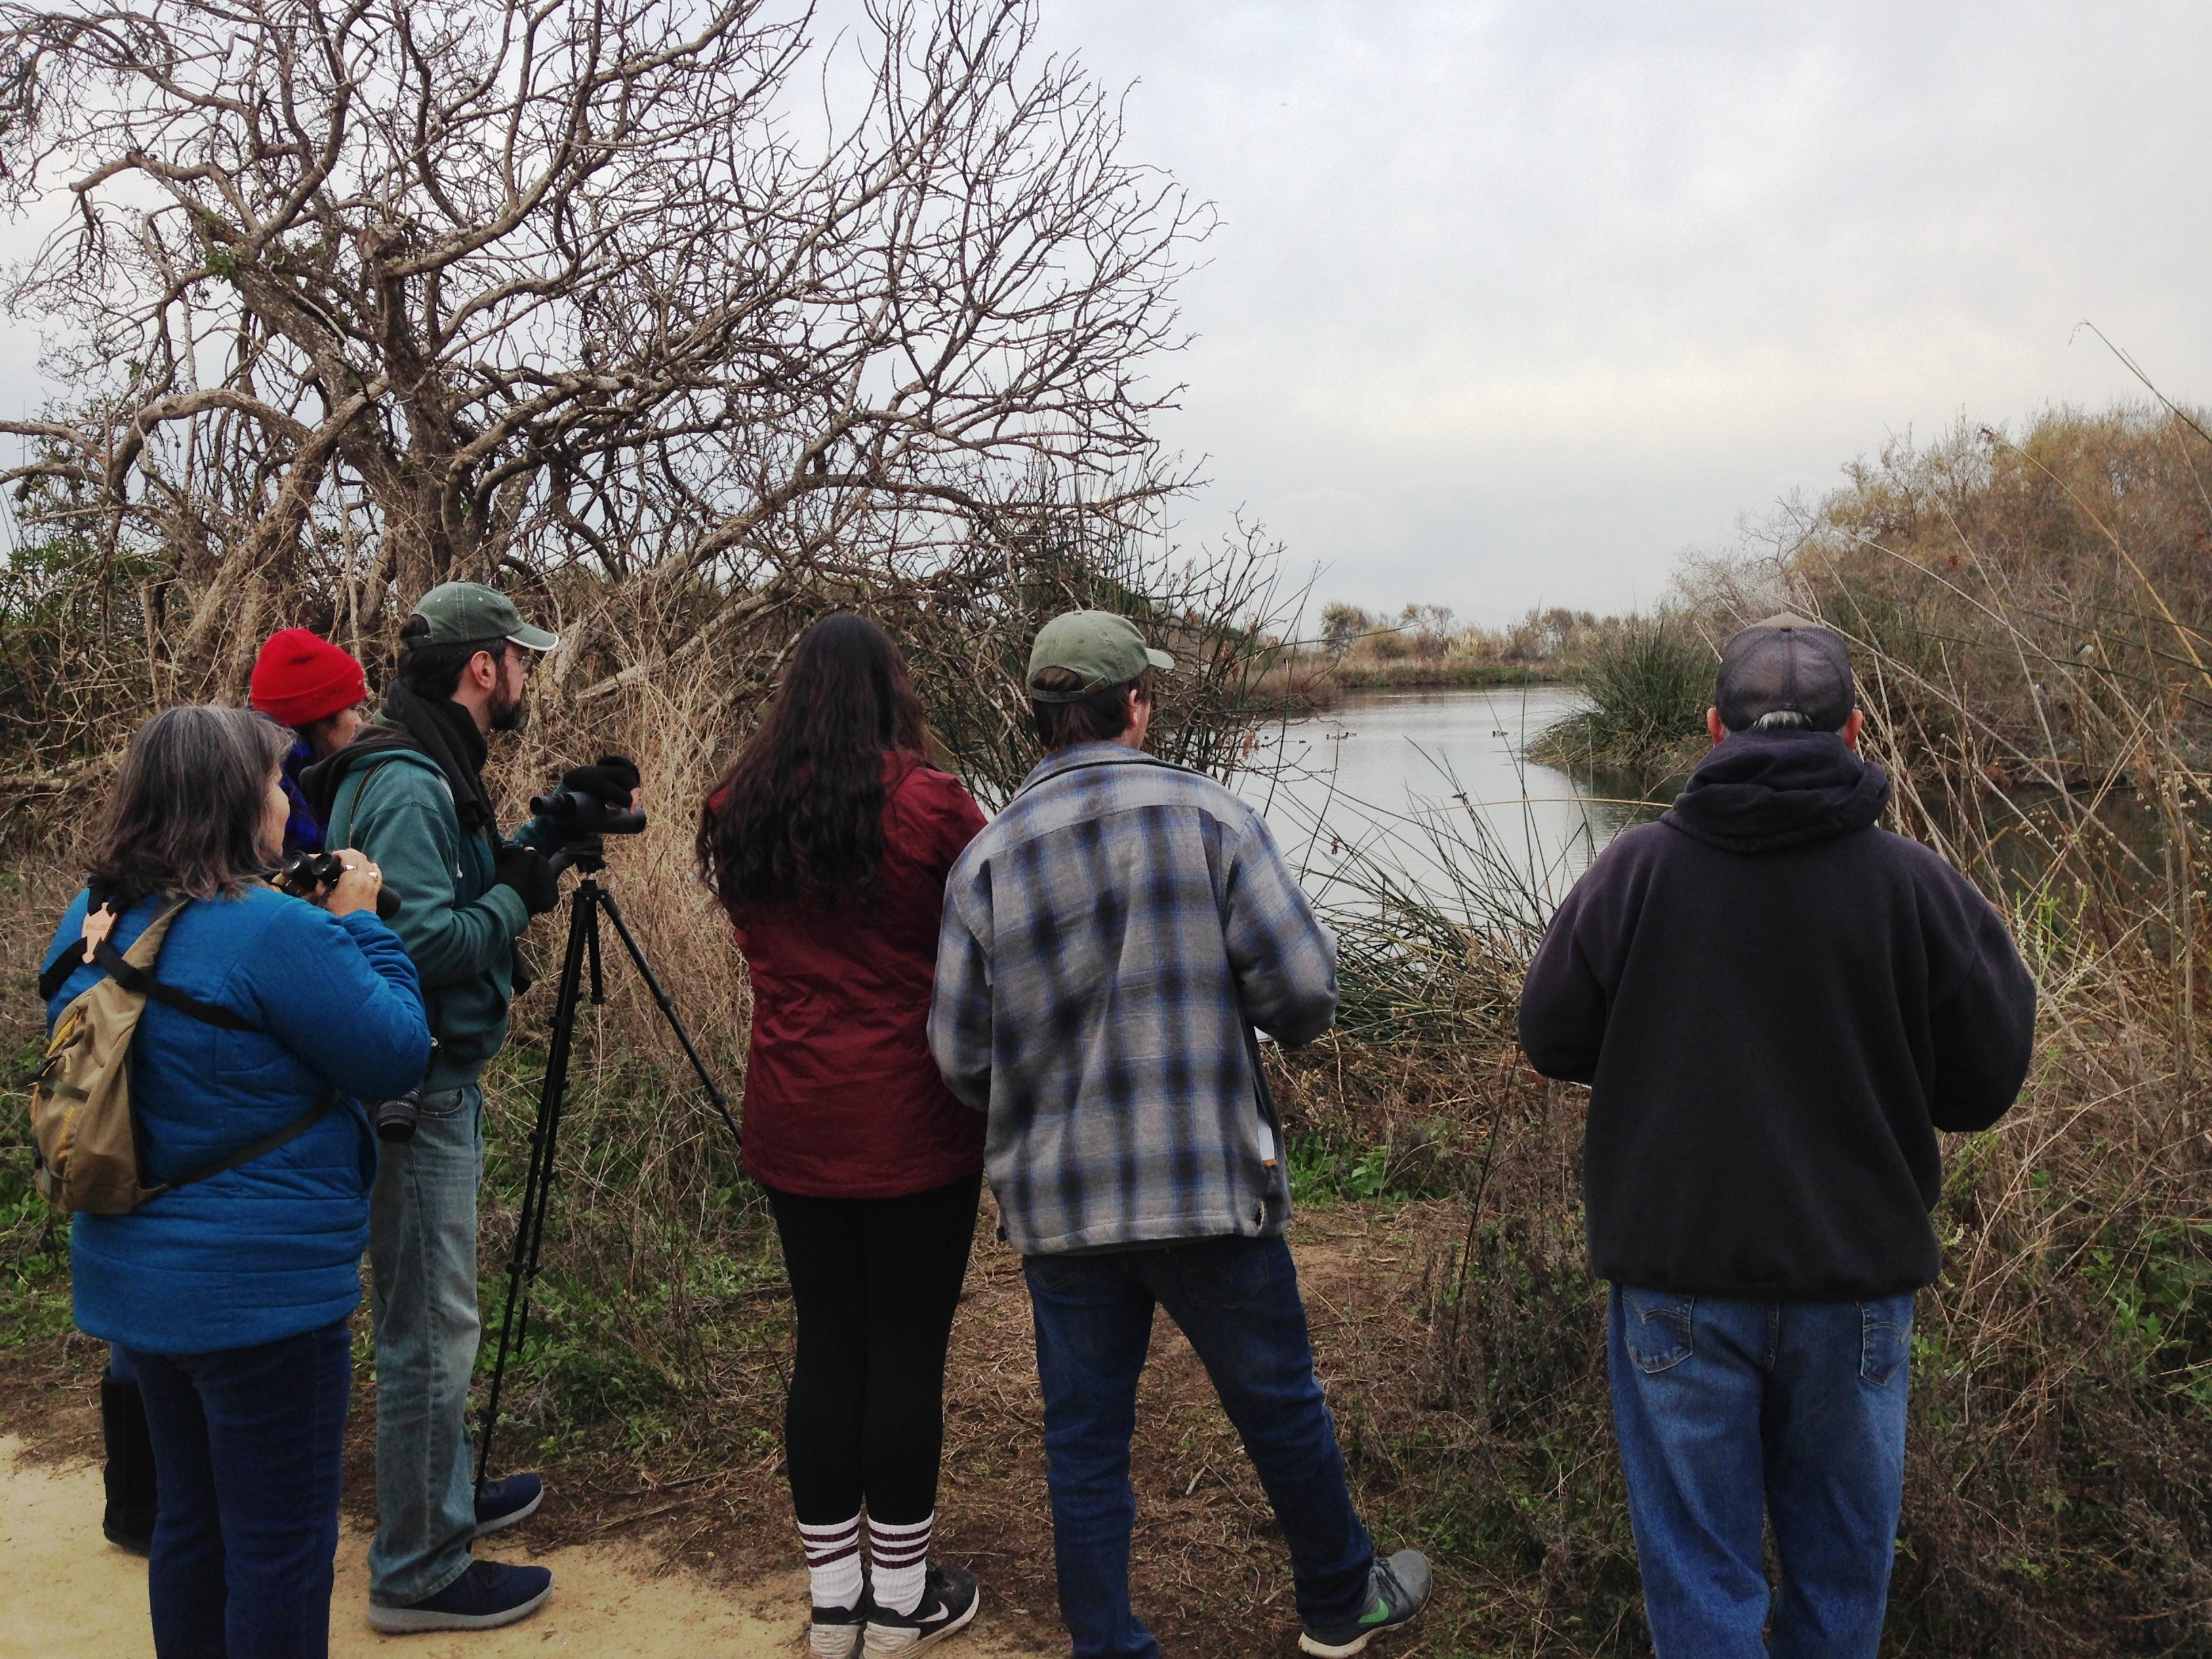 Birdwatchers look at ducks and other birds during the Christmas Bird Count on Saturday at the Ventura settling ponds. Last year's local count yielded 175 species and more than 23,000 individual birds.